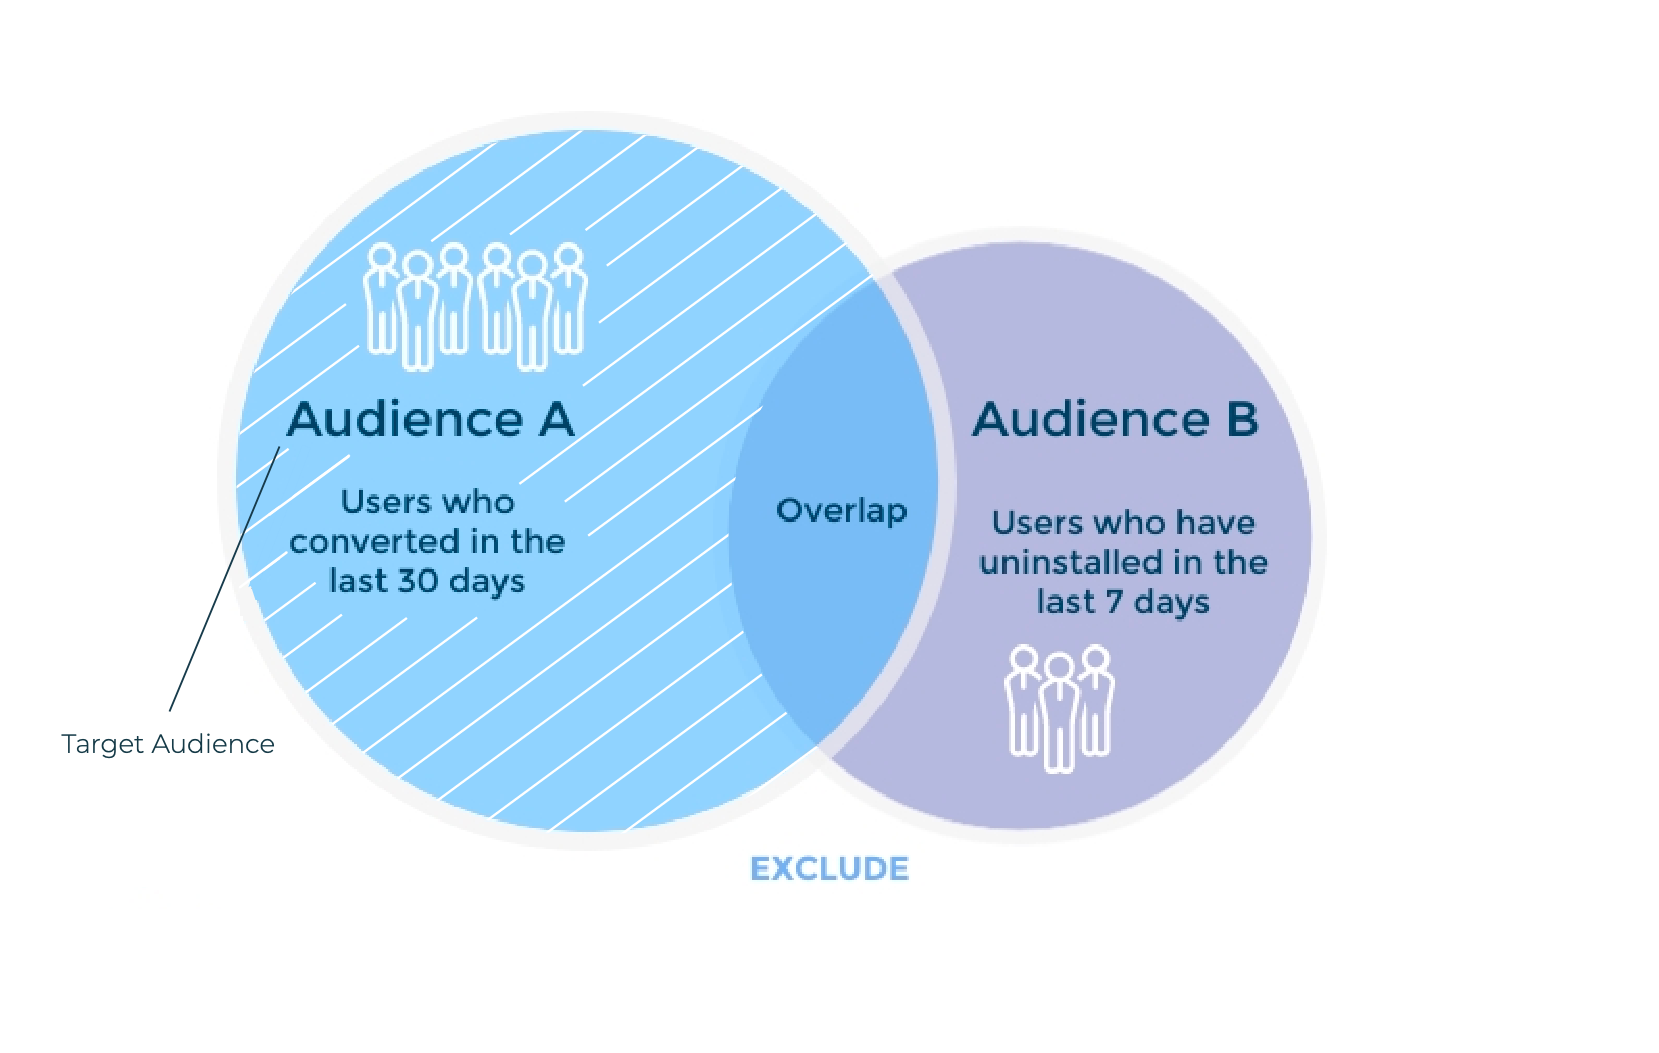 Example of audience segmentation in AppsFlyer (Audience A, exclude B)